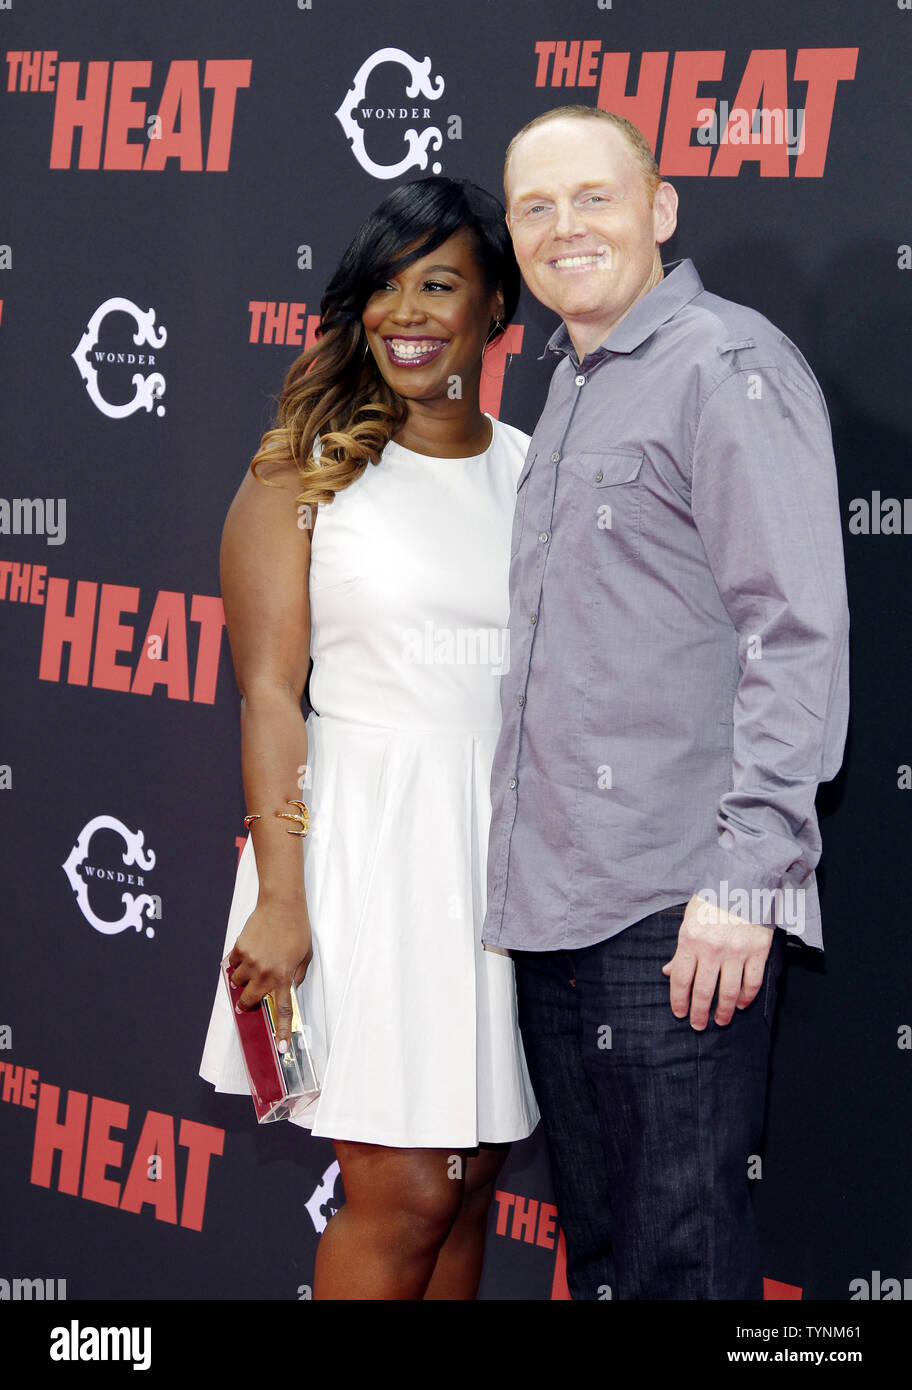 Bill Burr And Nia Renee Hill Arrive On The Red Carpet At The New York Premiere Of The Heat At The Ziegfeld Theatre In New York City On June 23 2013 Upi John